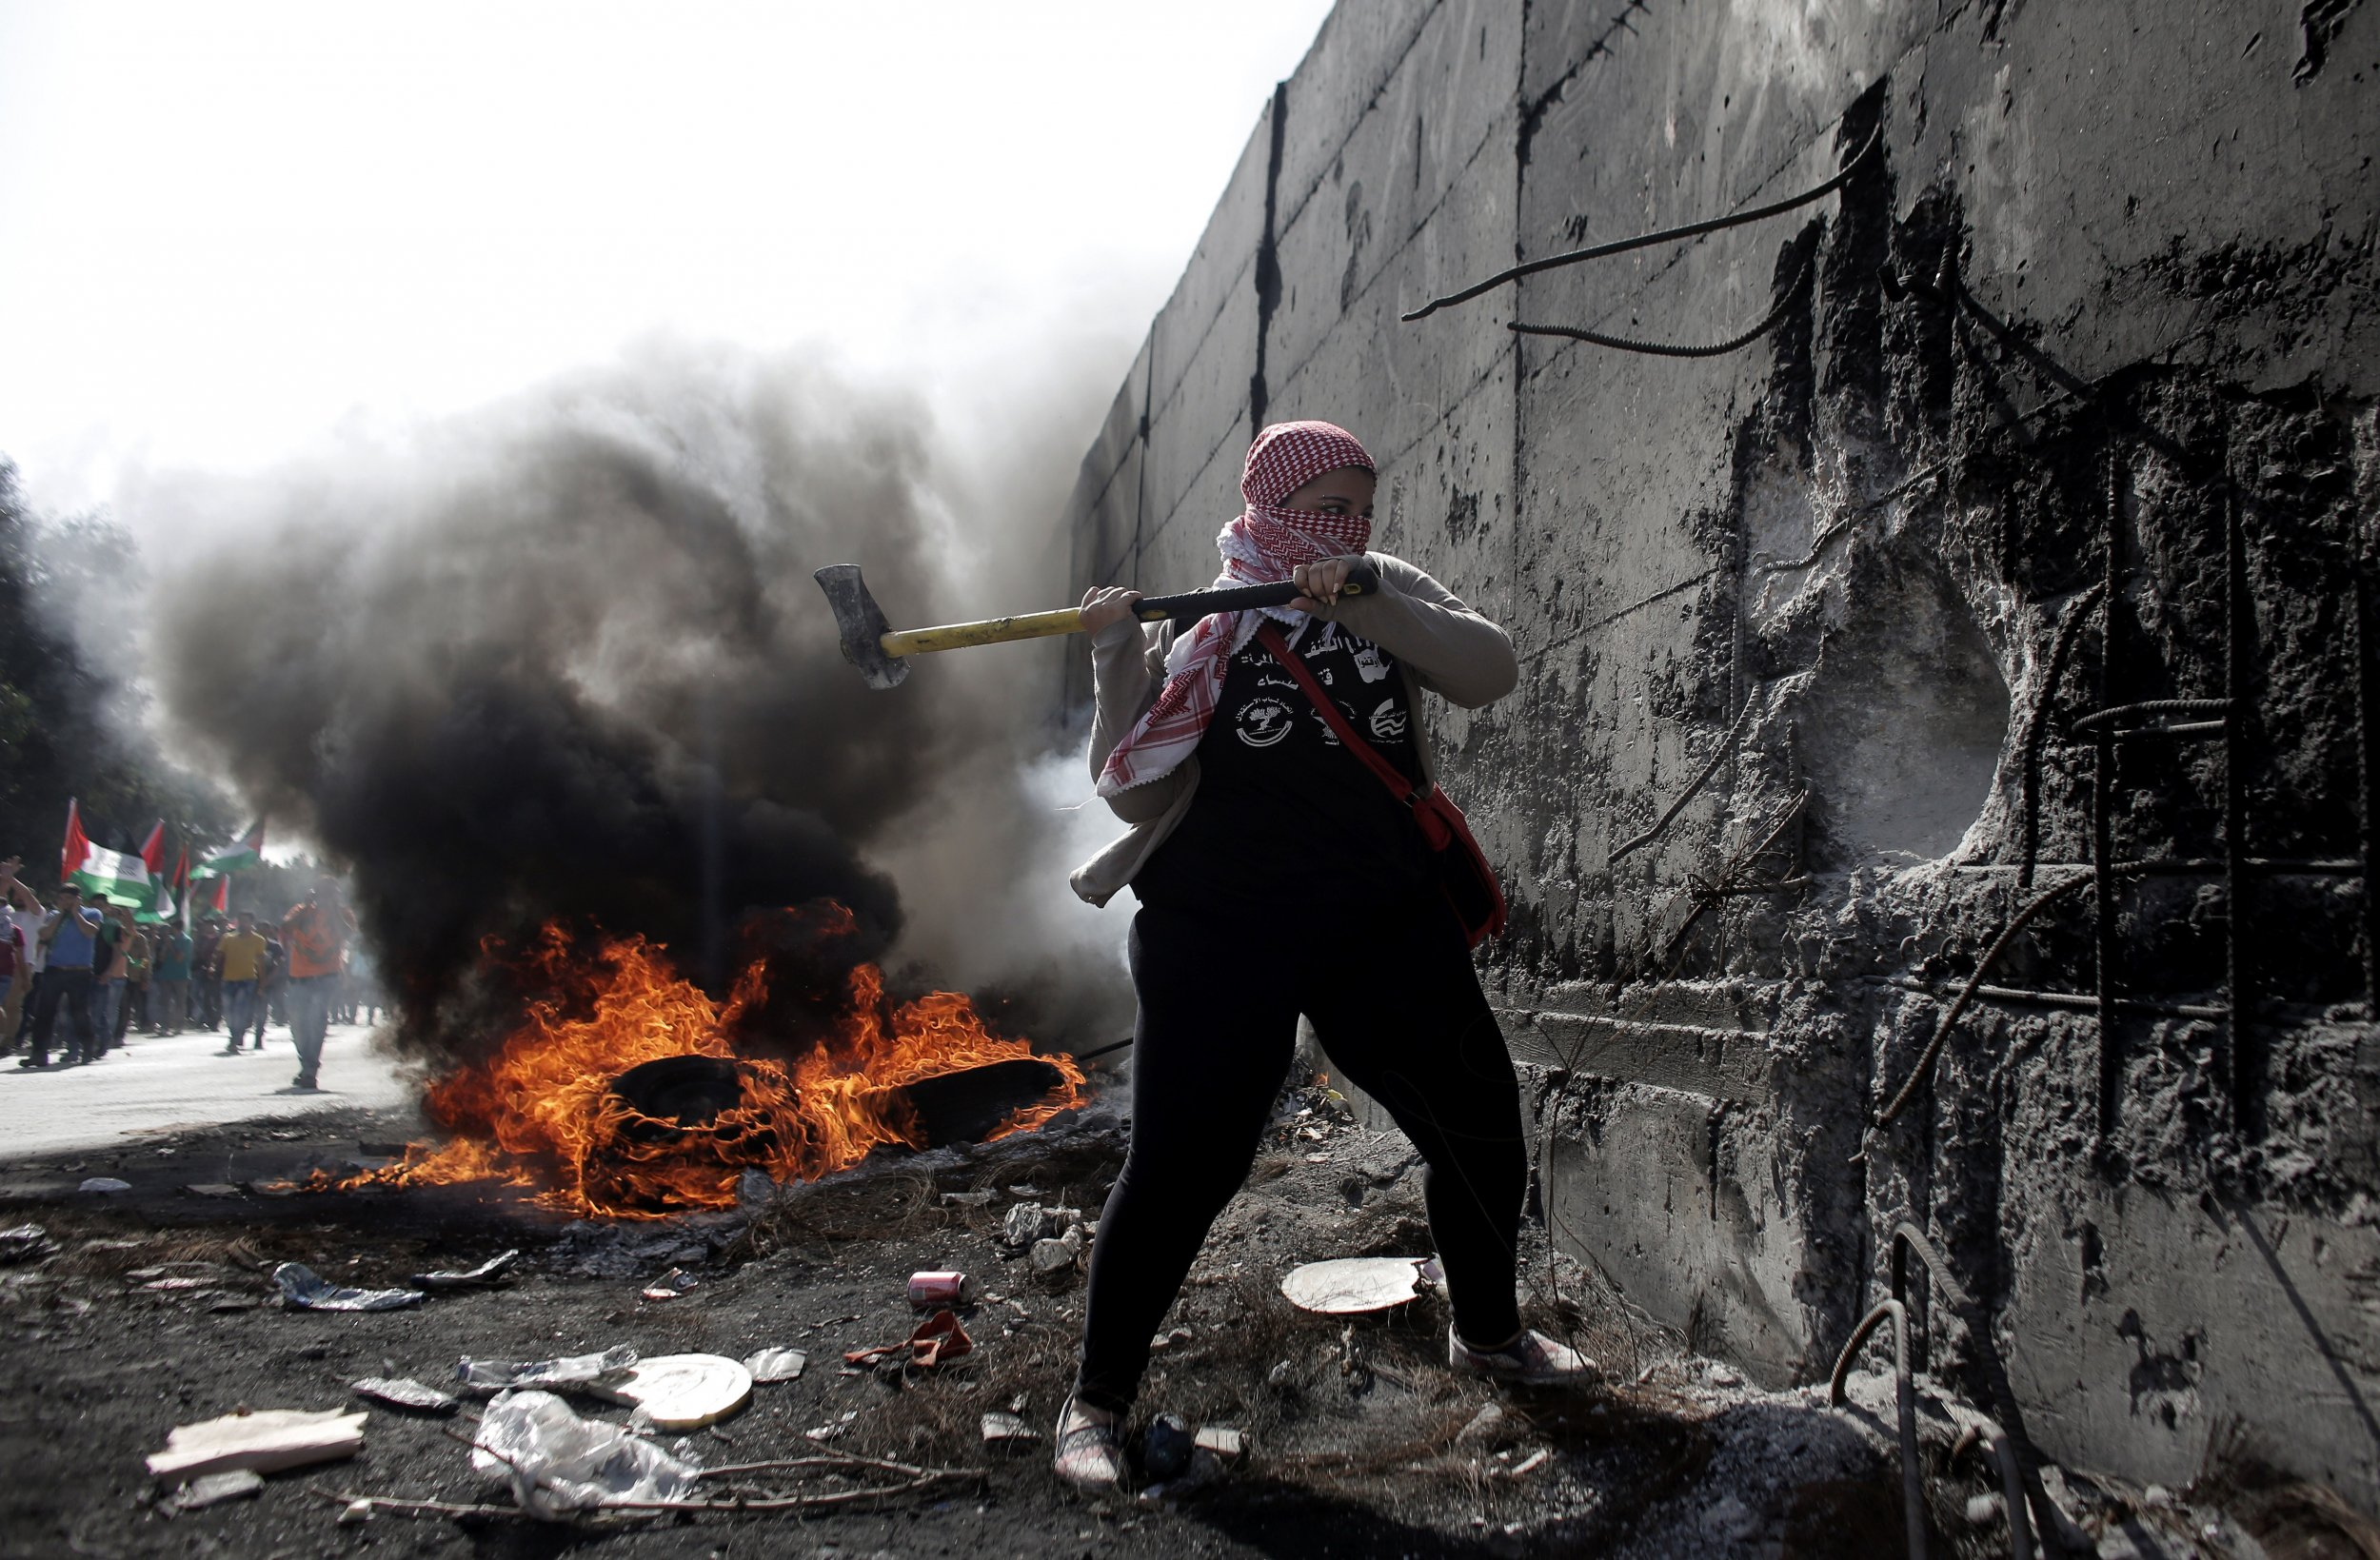 Israel Palestinians Middle East West Bank Clashes Stabbings